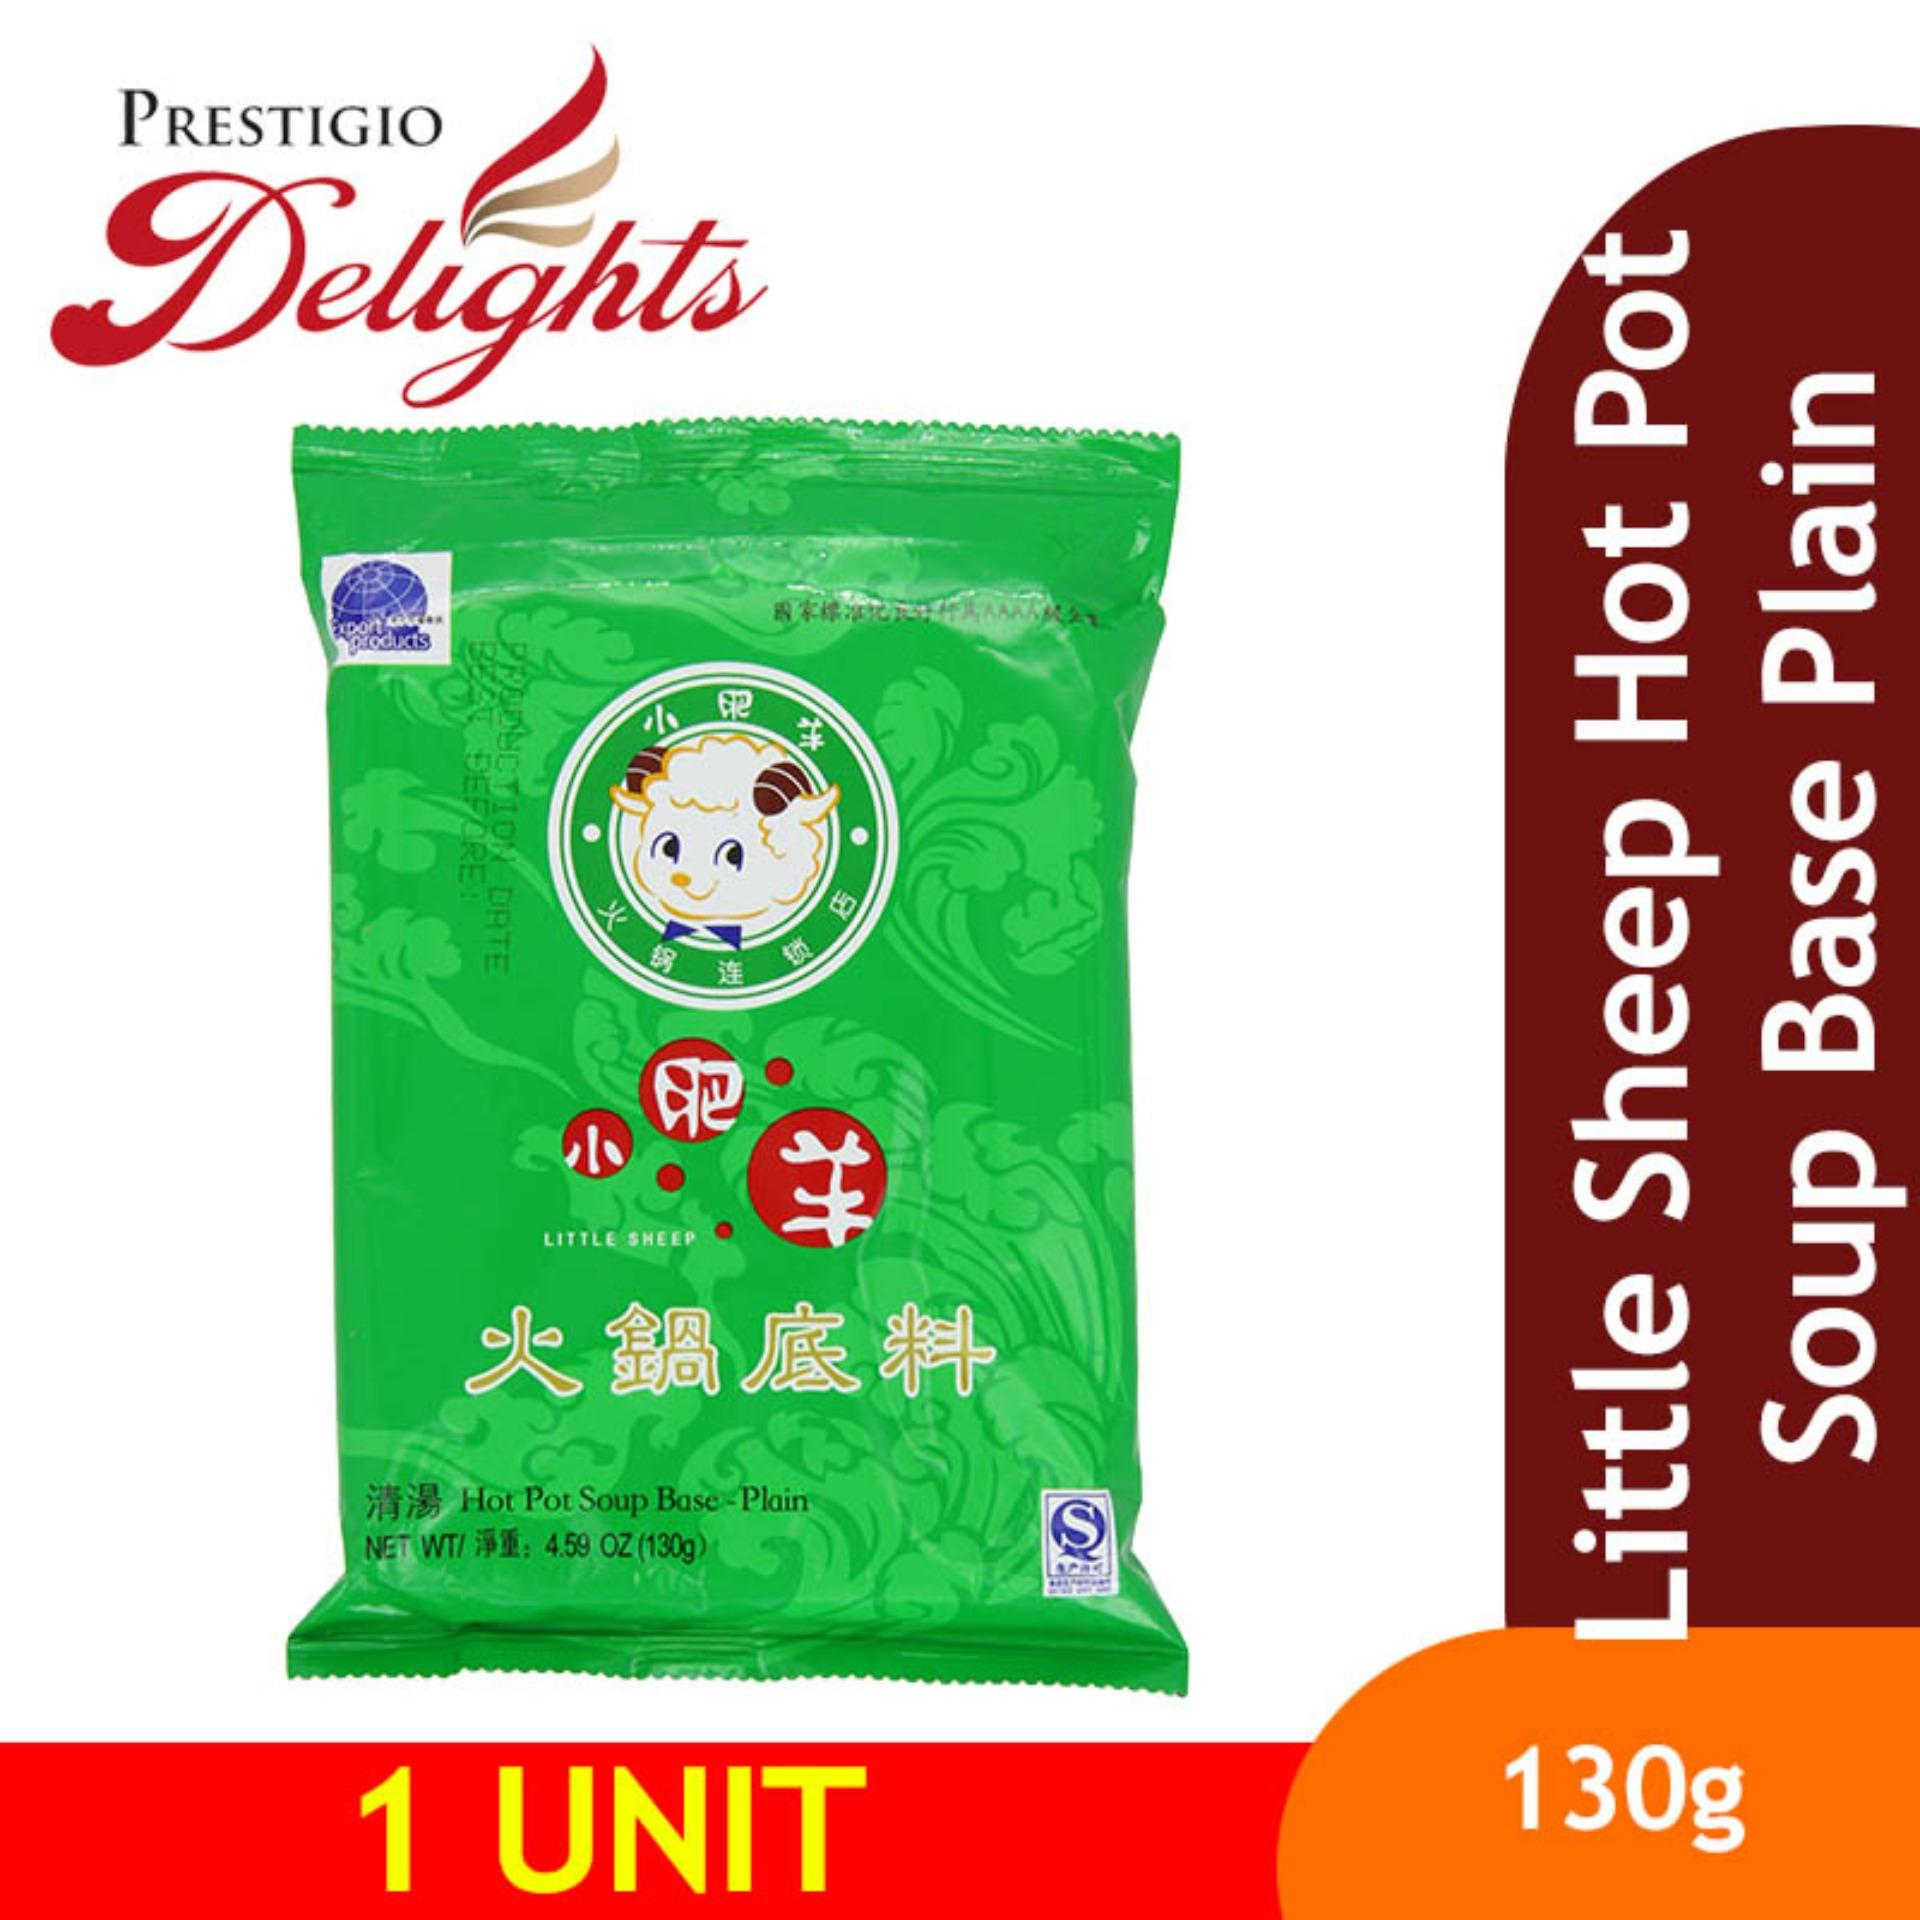 Little Sheep Hot Pot Soup Base Plain 130g By Prestigio Delights.